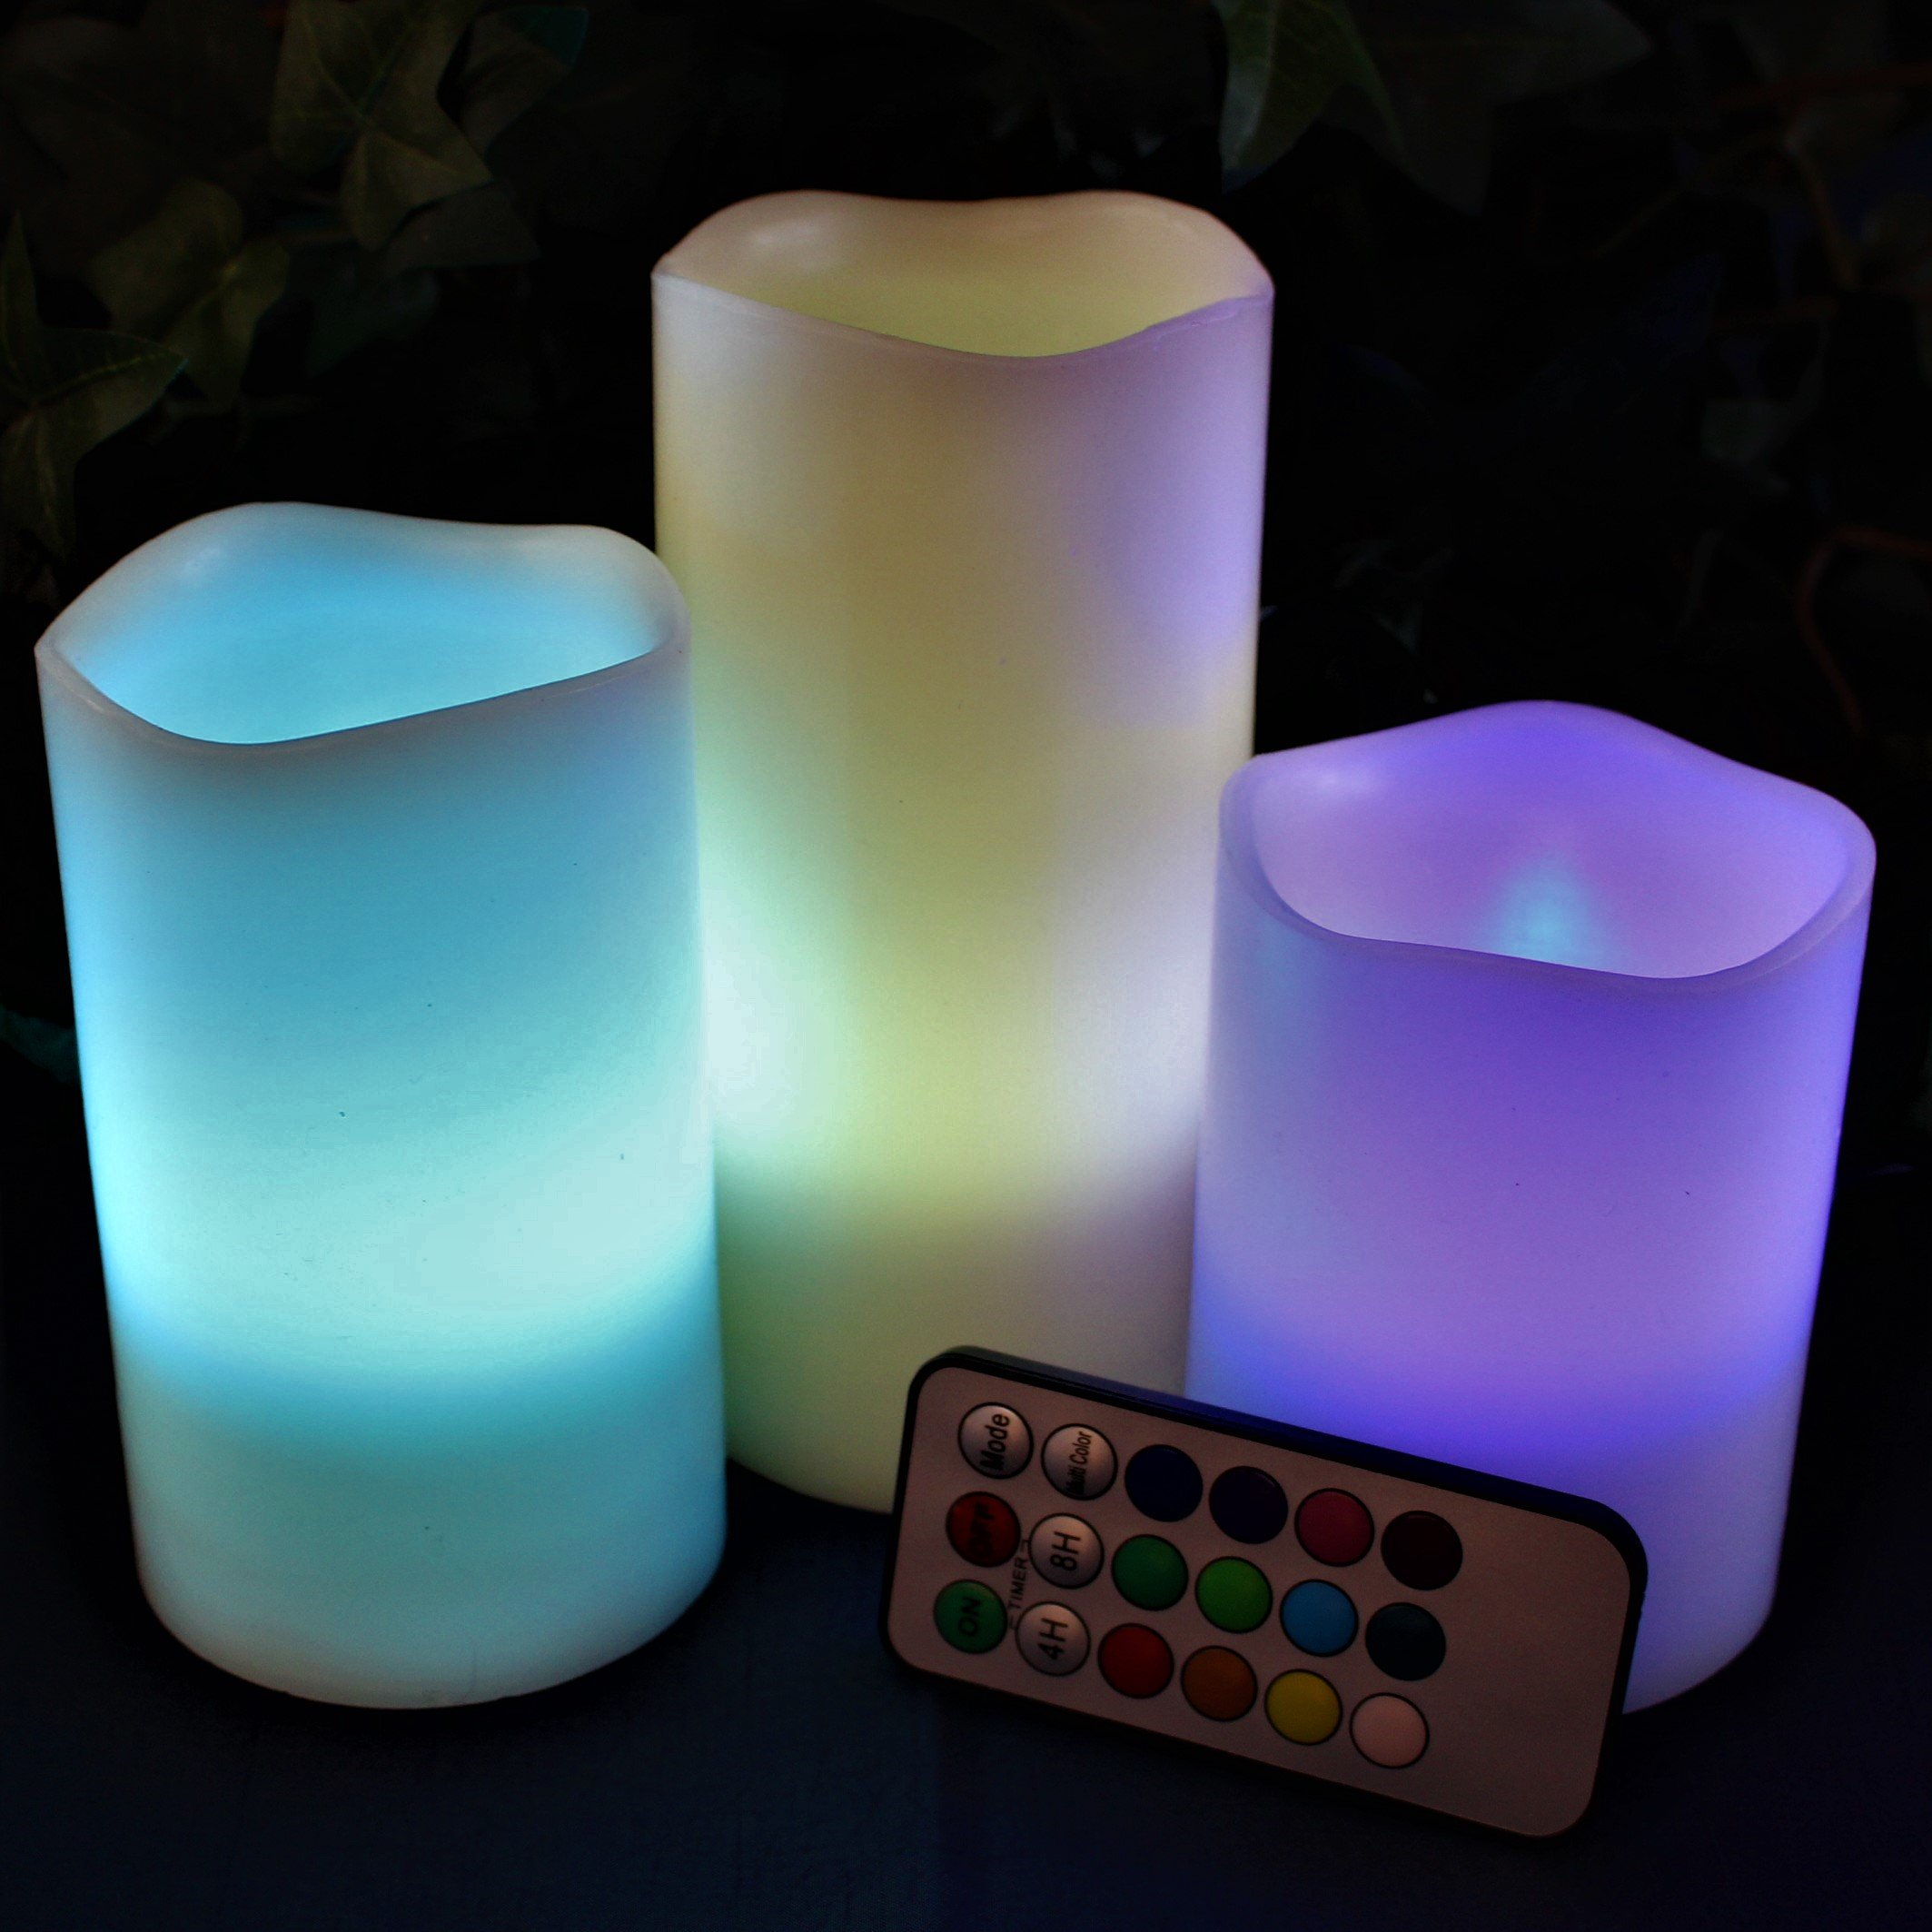 LED Lytes Flickering Flameless Candles - Battery Operated Candles Vanilla Scented Set of 3 Round Ivory Wax Flickering Multi Colored Flame, auto-Off Timer Remote Control Weddings Gifts by LED Lytes (Image #4)